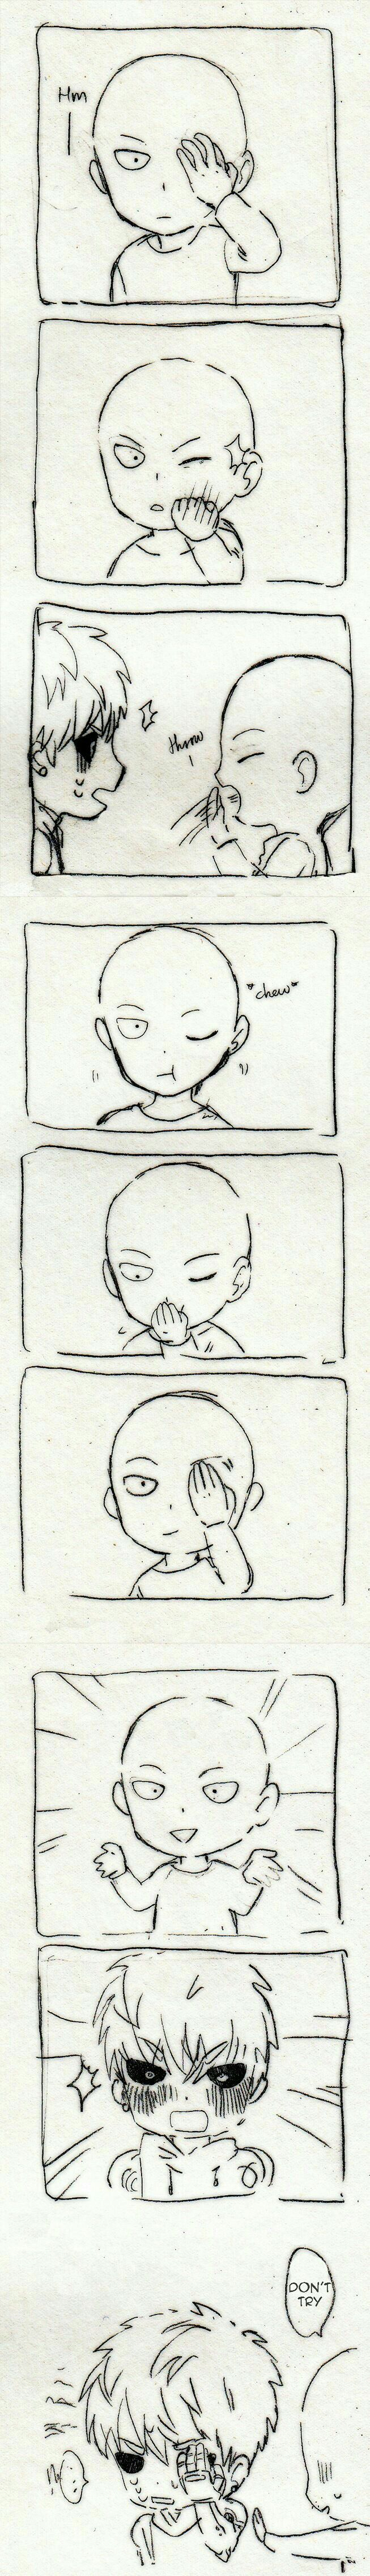 Genos, Saitama, comic, text, funny, magic trick, popping eye, cute, chibi; One Punch Man